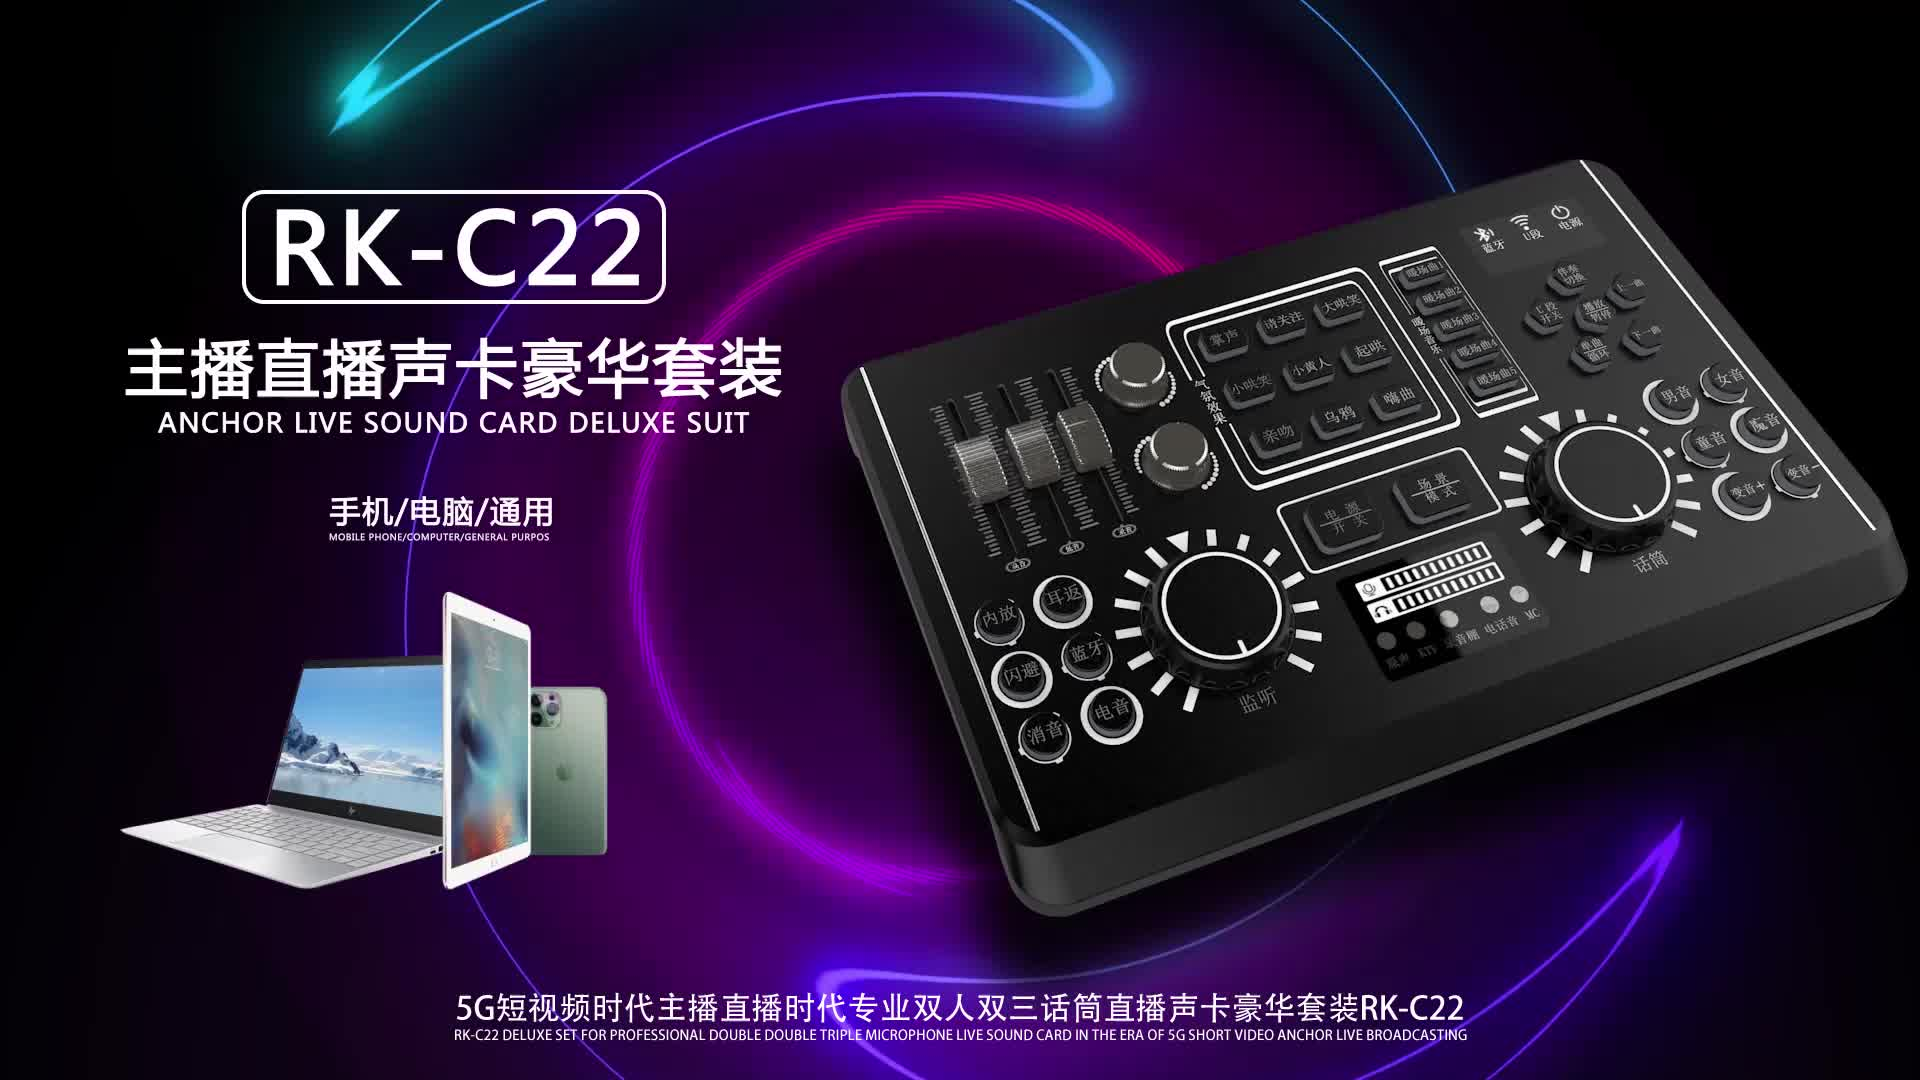 2 color Voice Changer, Live Sound Card for Smart Phone/iPad/Computer, Sound Card with Multiple Funny Sound Effect, for Recording